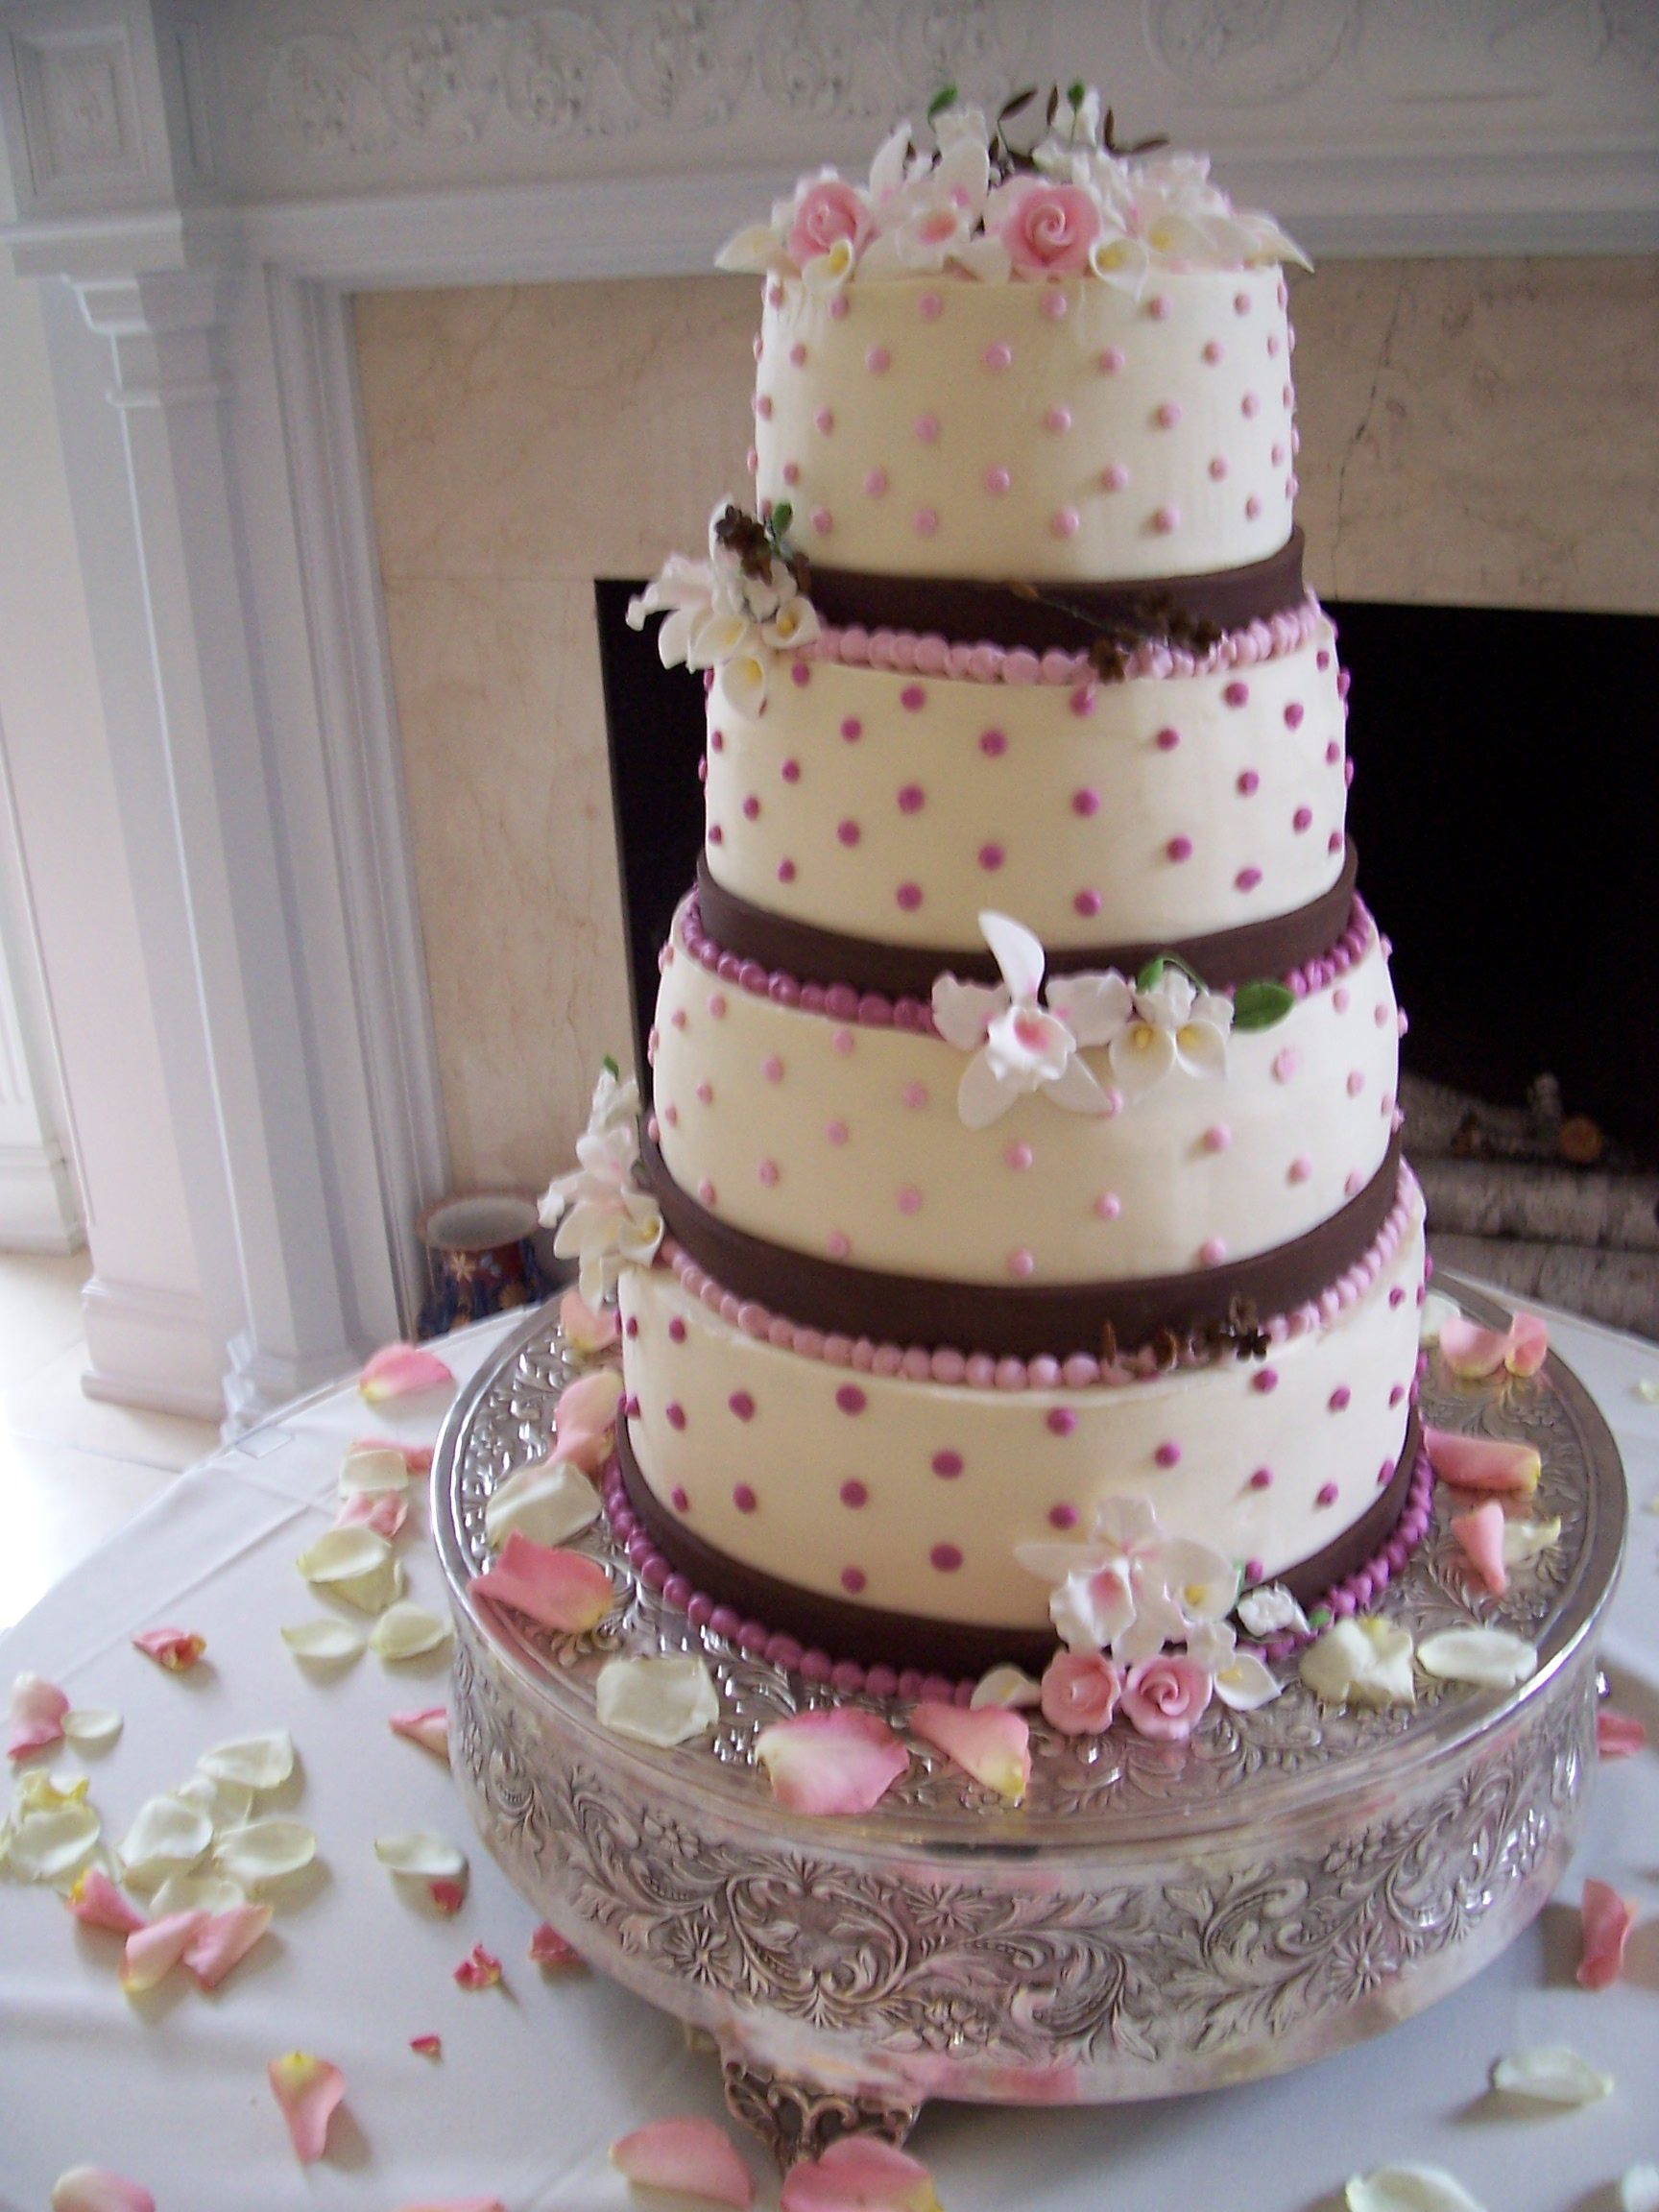 two shades of pink & brown wedding cake - triflescakes